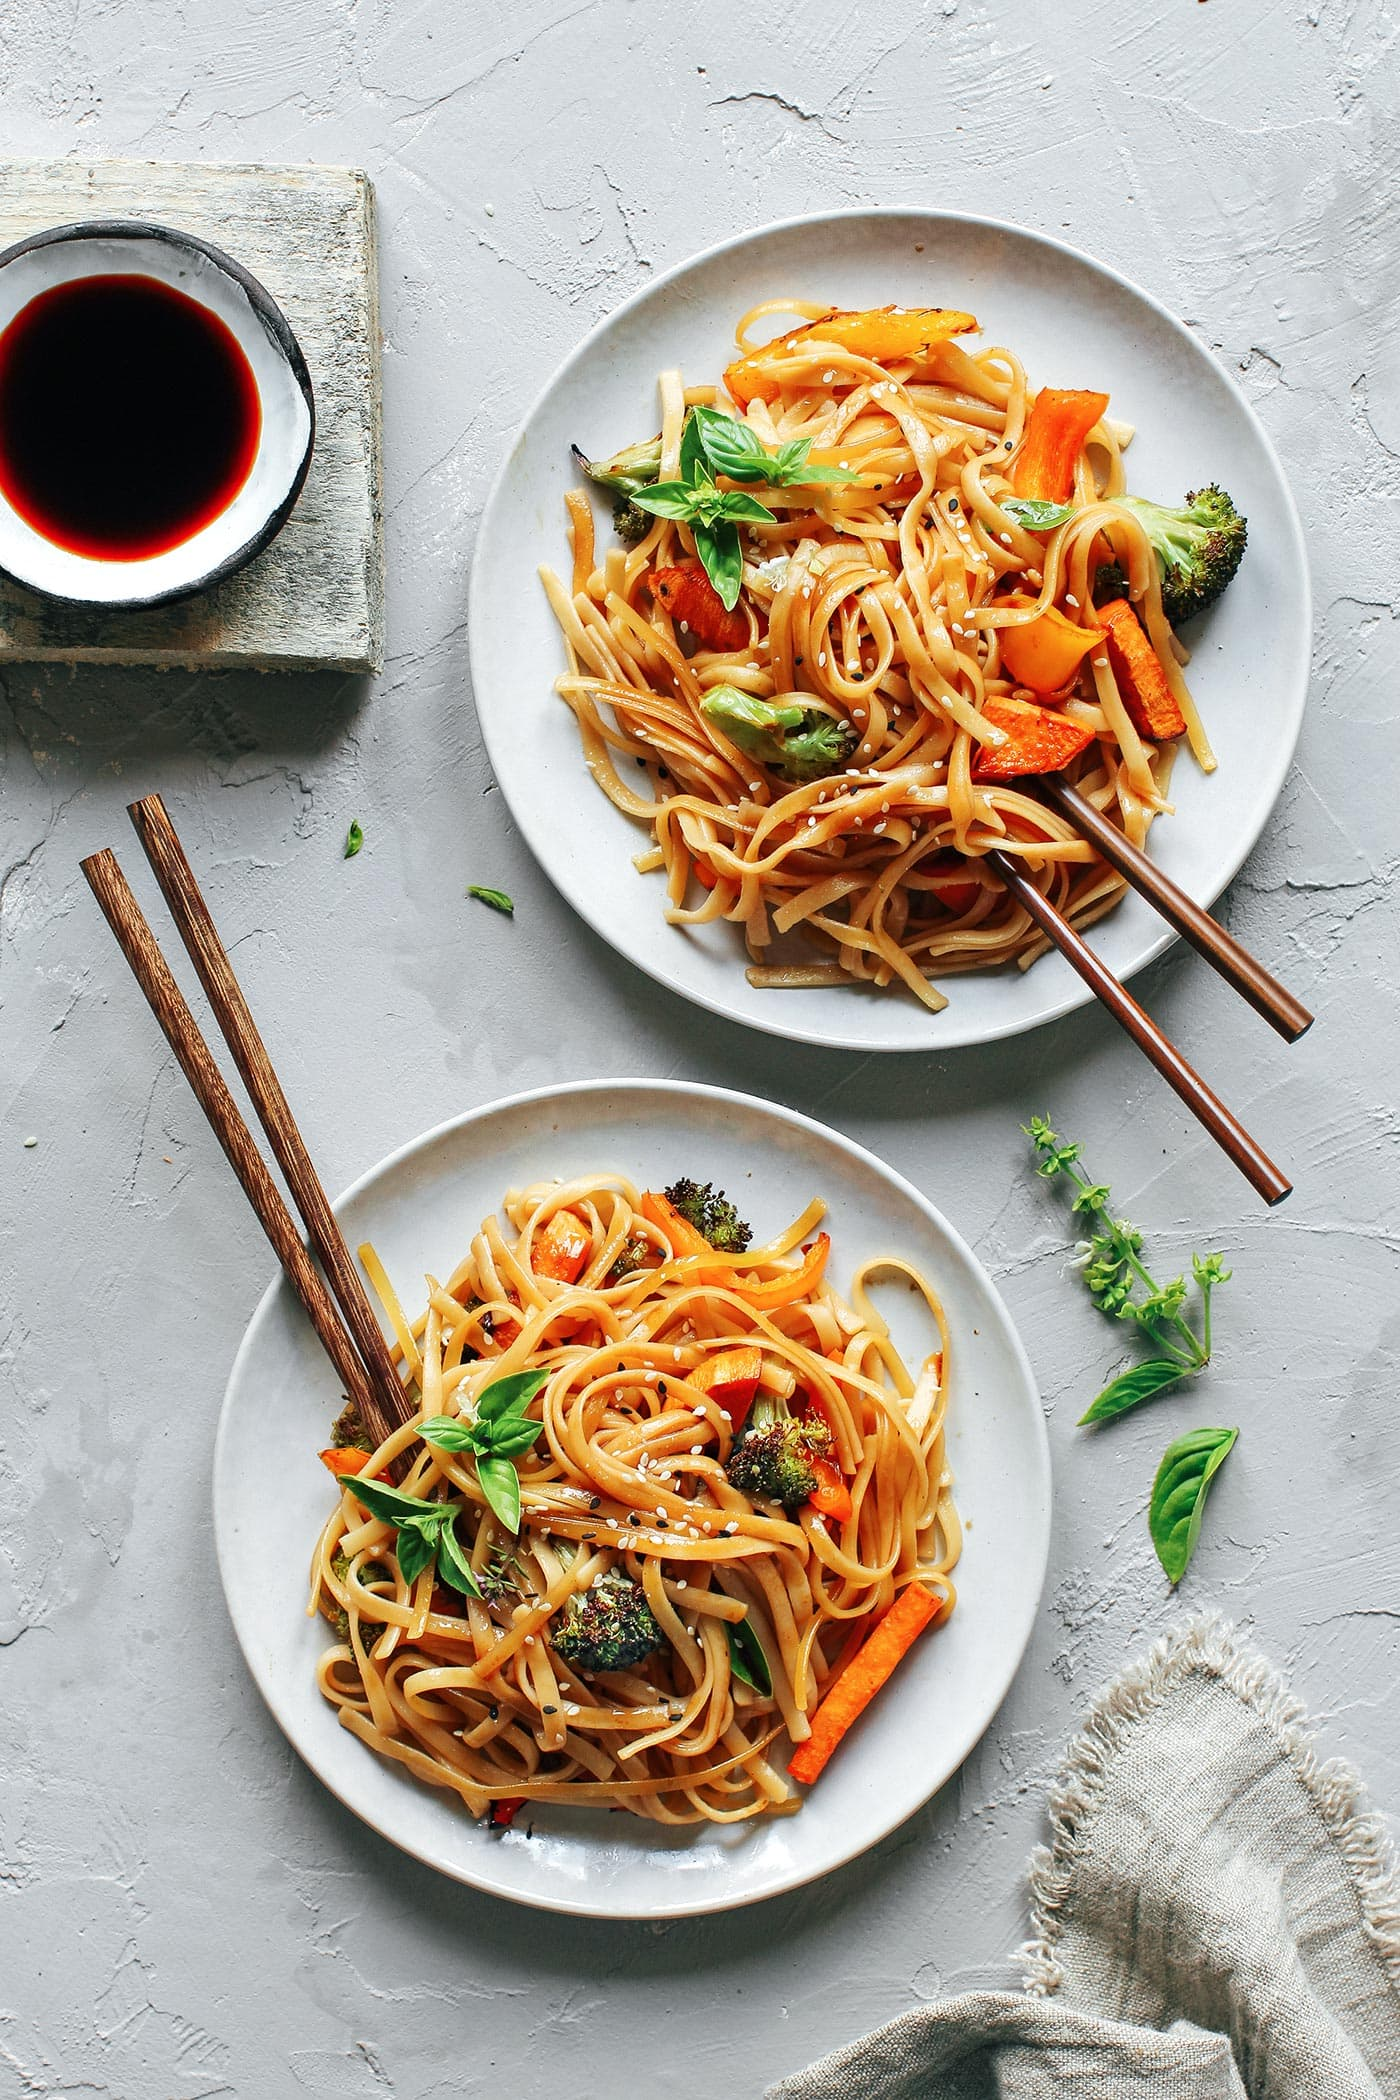 Instant Pot Sesame & Basil Noodles with Roasted Veggies